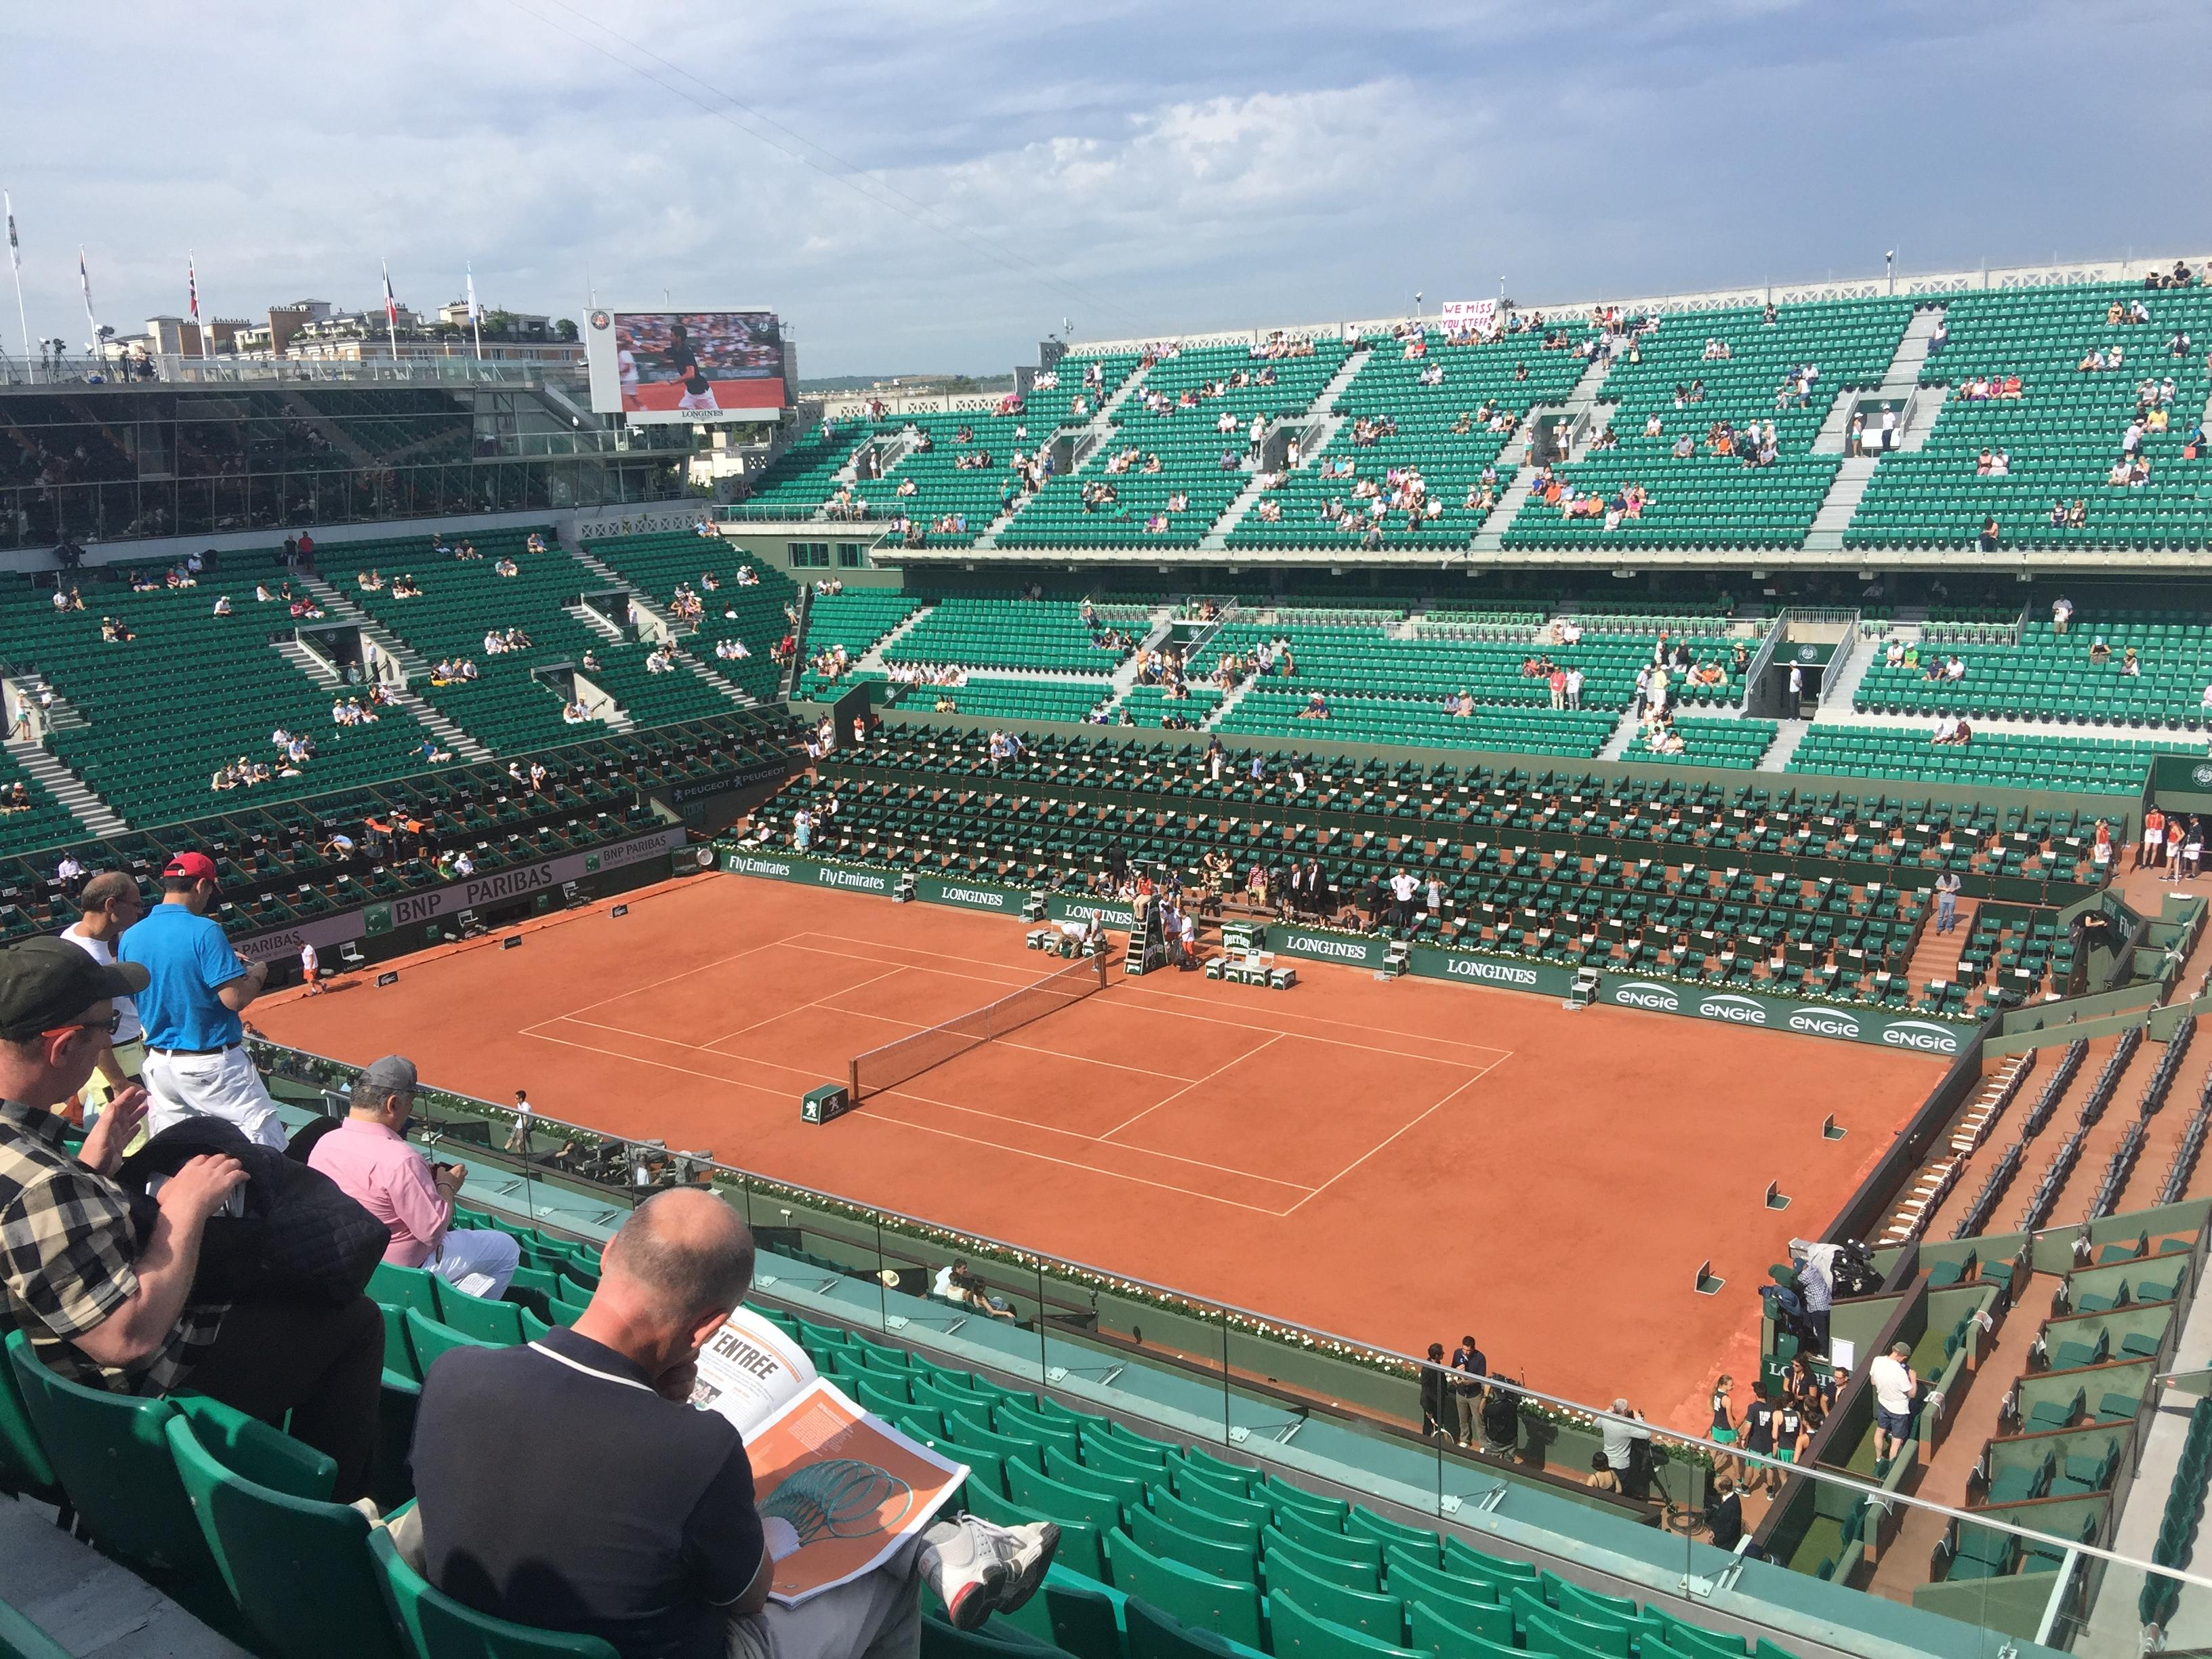 French Open at Roland-Garros 2017 Court Phillipe Chatrier